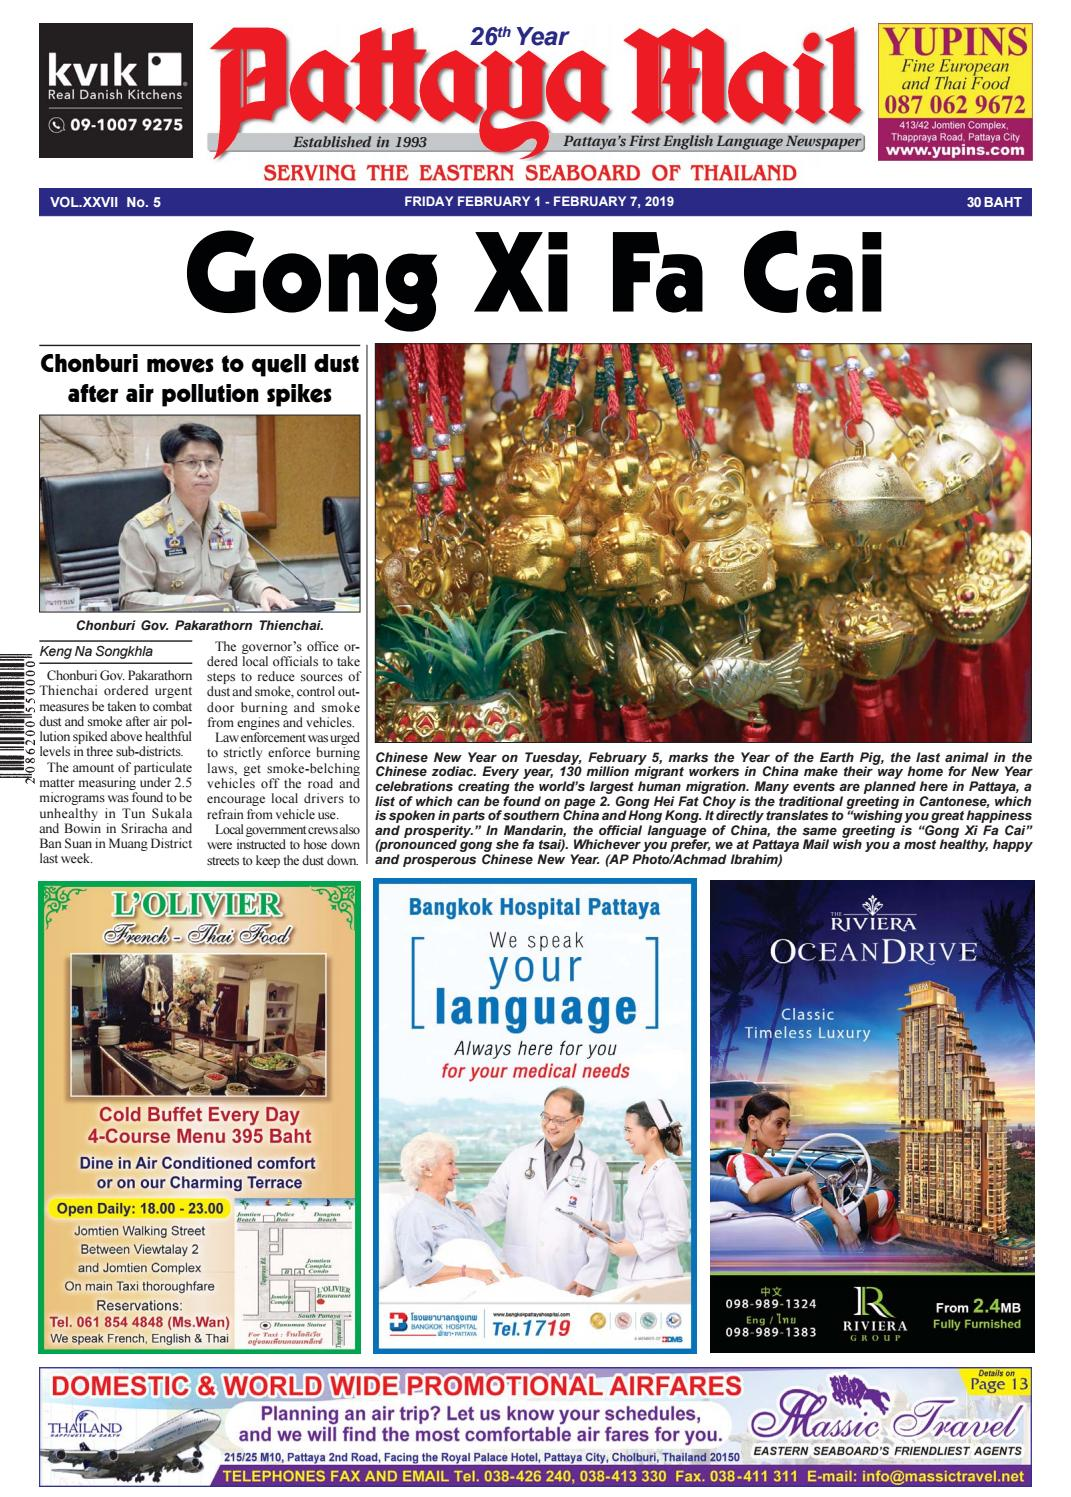 Pattaya Mail - FRIDAY FEBRUARY 1 - FEBRUARY 7, 2019 (Vol